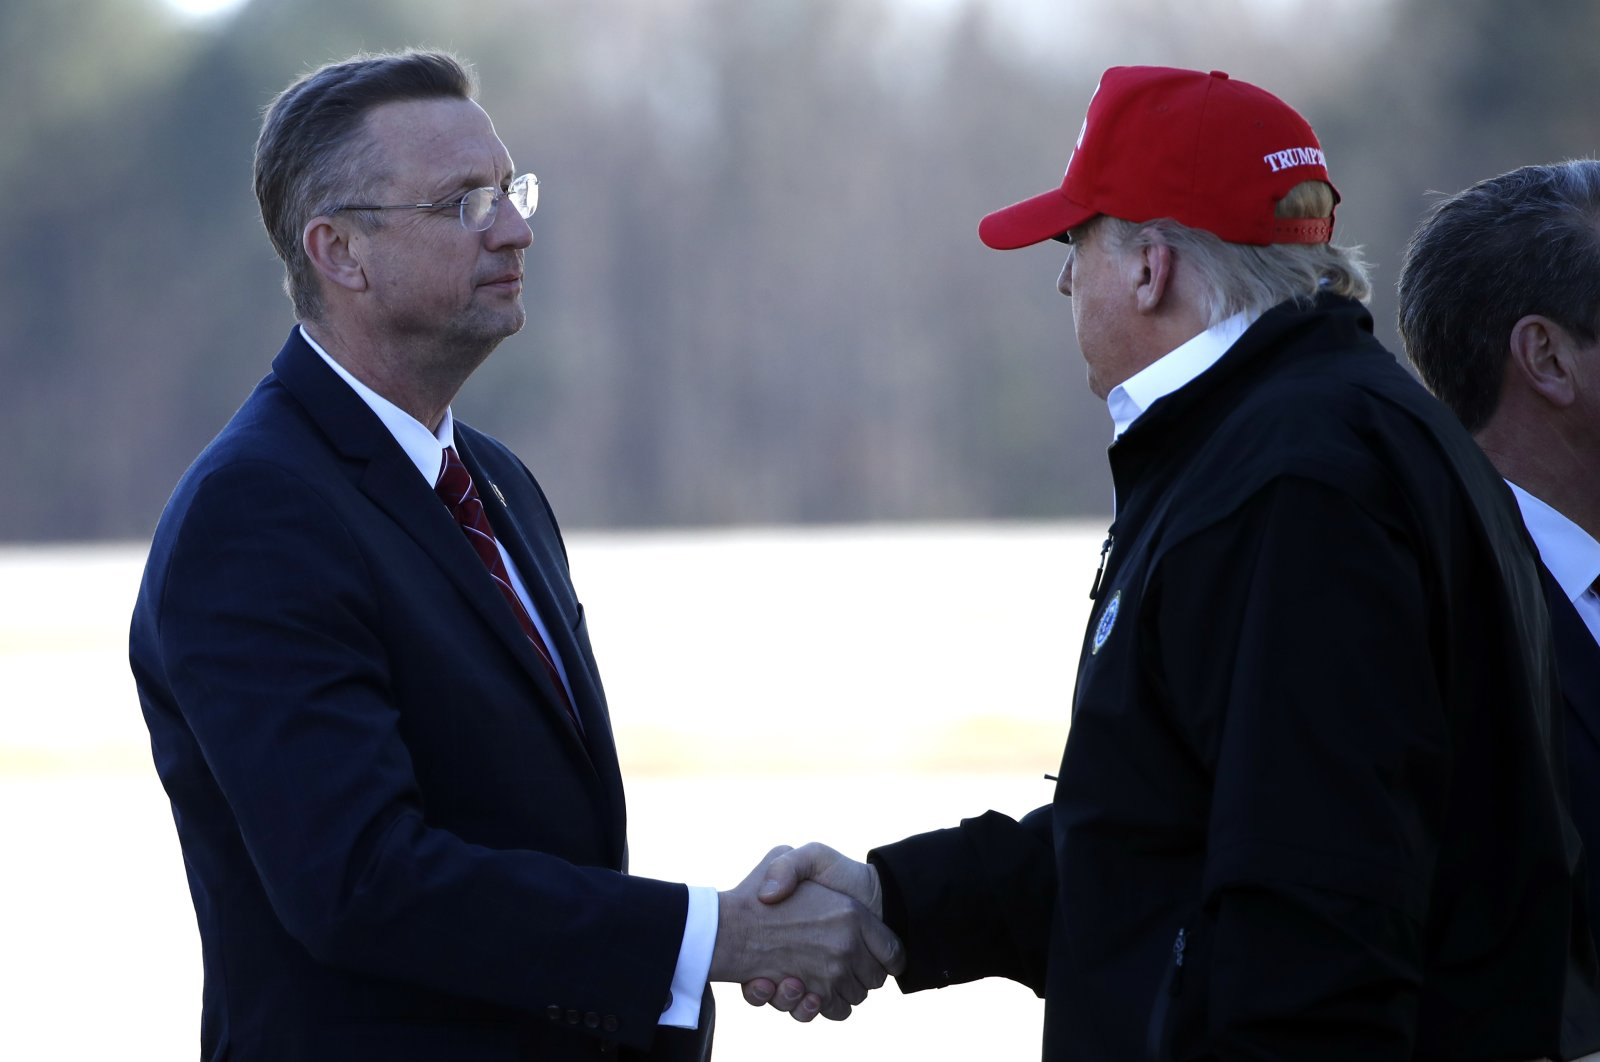 President Donald Trump greets Rep. Doug Collins, R-Ga., as he arrives on Air Force One Friday, March 6, 2020, at Dobbins Air Reserve Base in Marietta, Ga. (AP Photo)